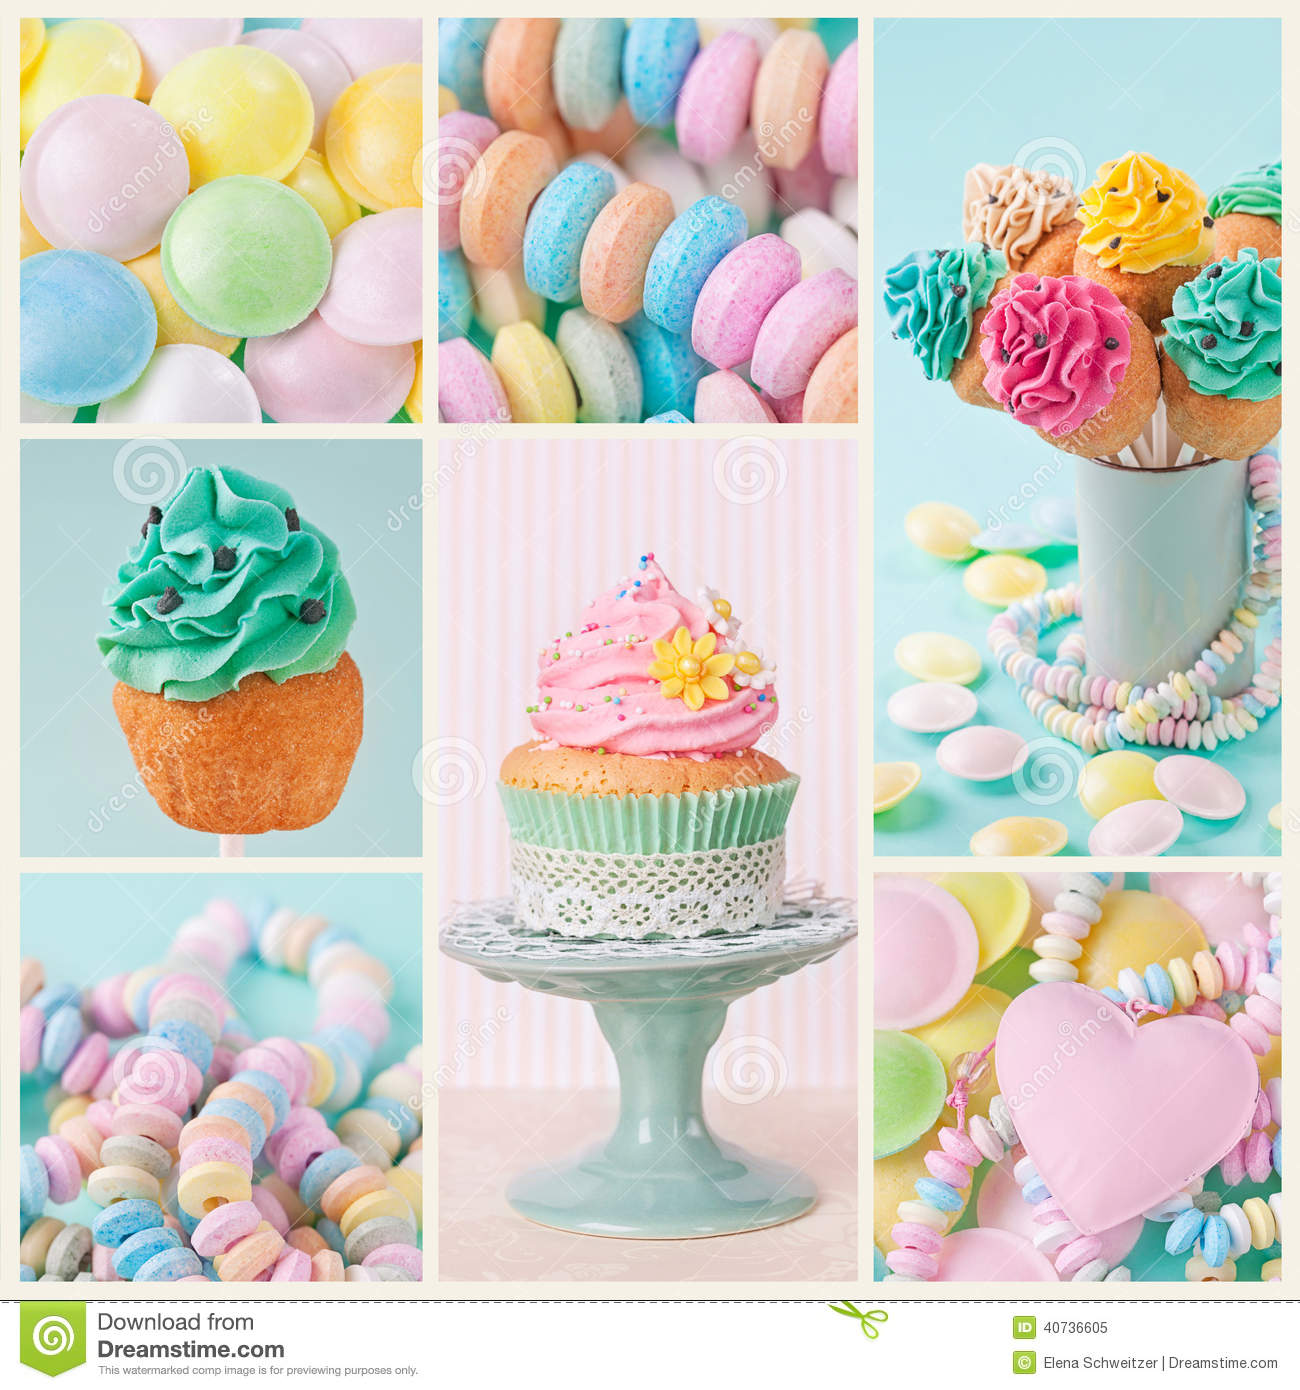 Cute Popsicle Wallpaper Pastel Colored Sweets Stock Image Image Of Bright Blue